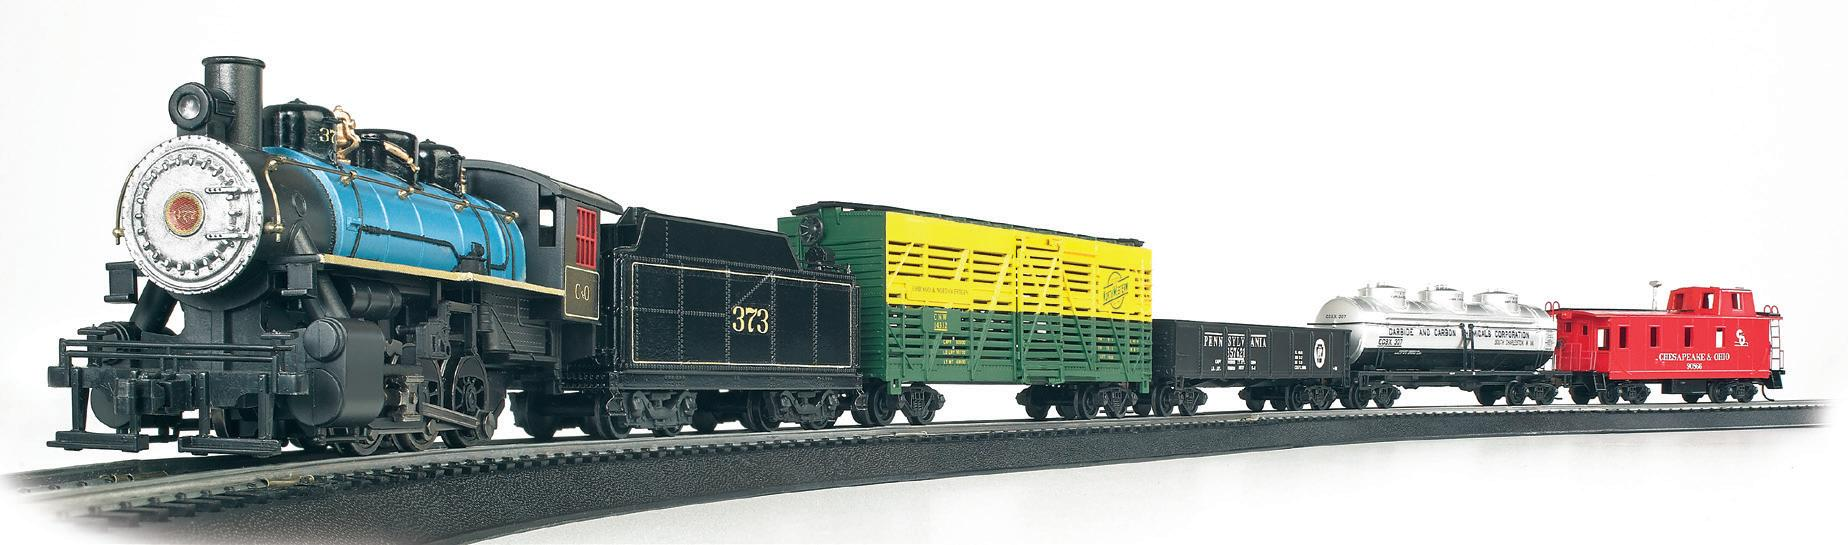 Page 4 of Bachmann Train Sets